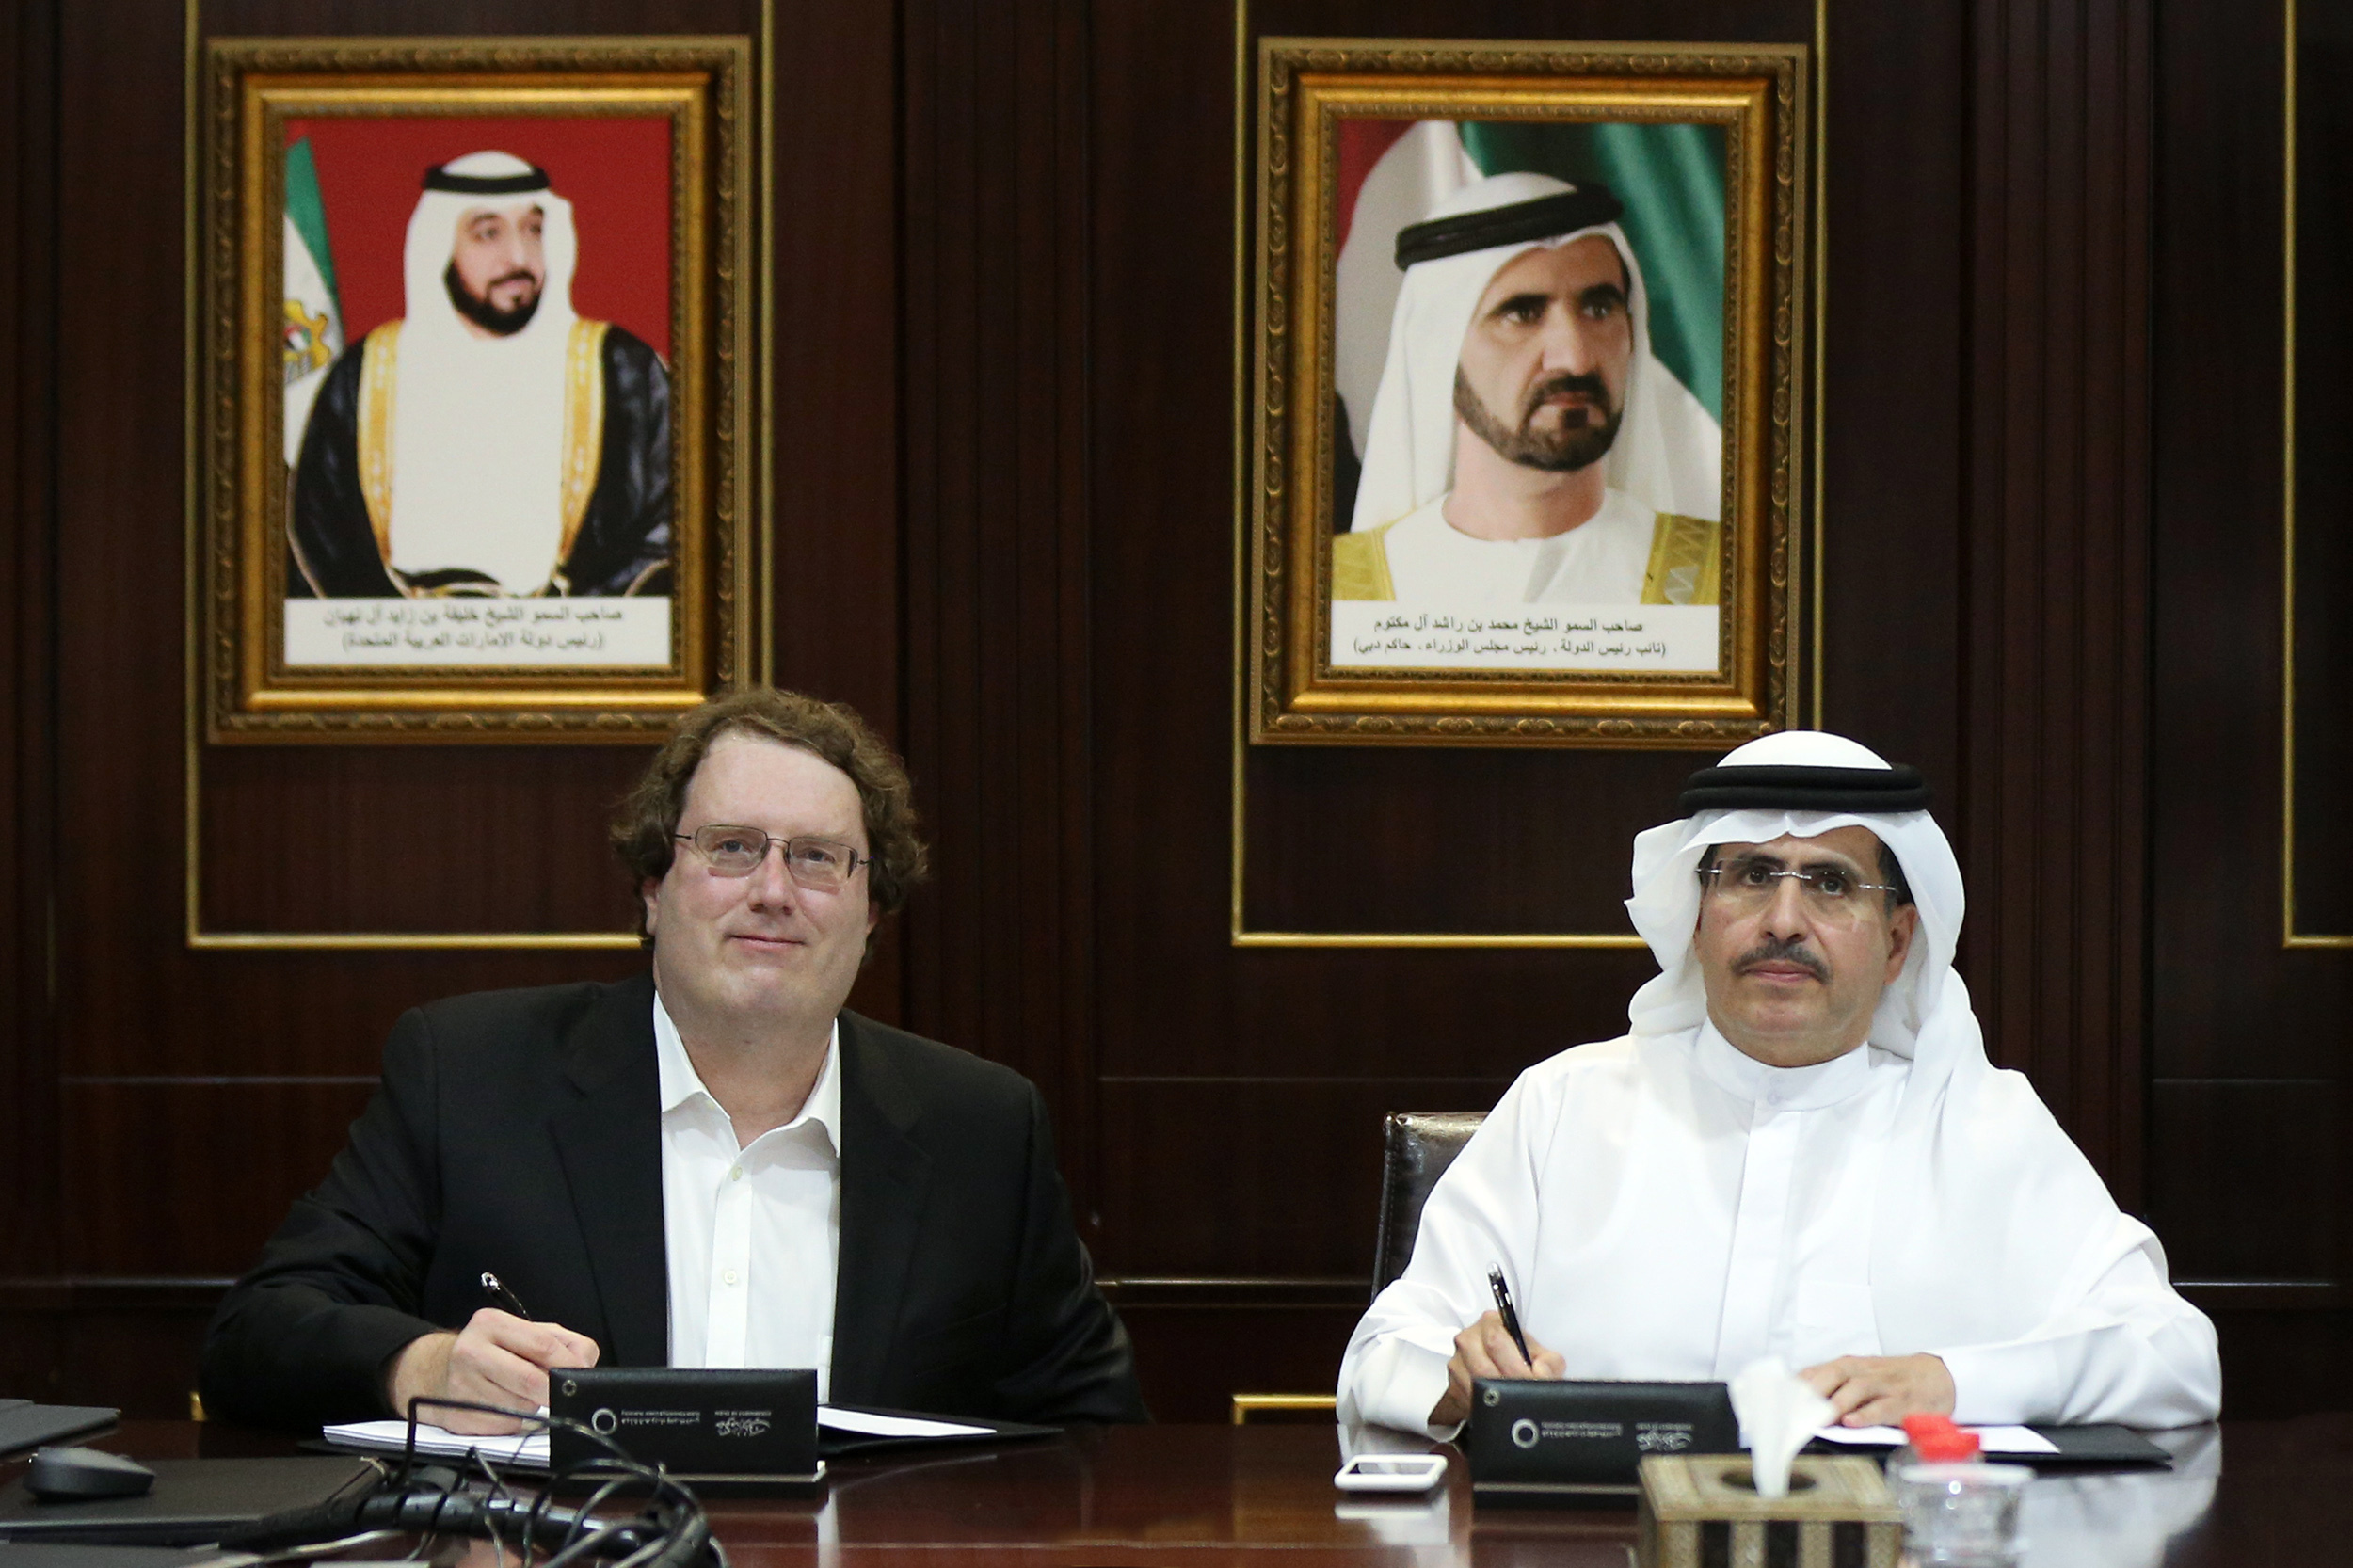 dewa signs agreement with silver spring networks to provide a